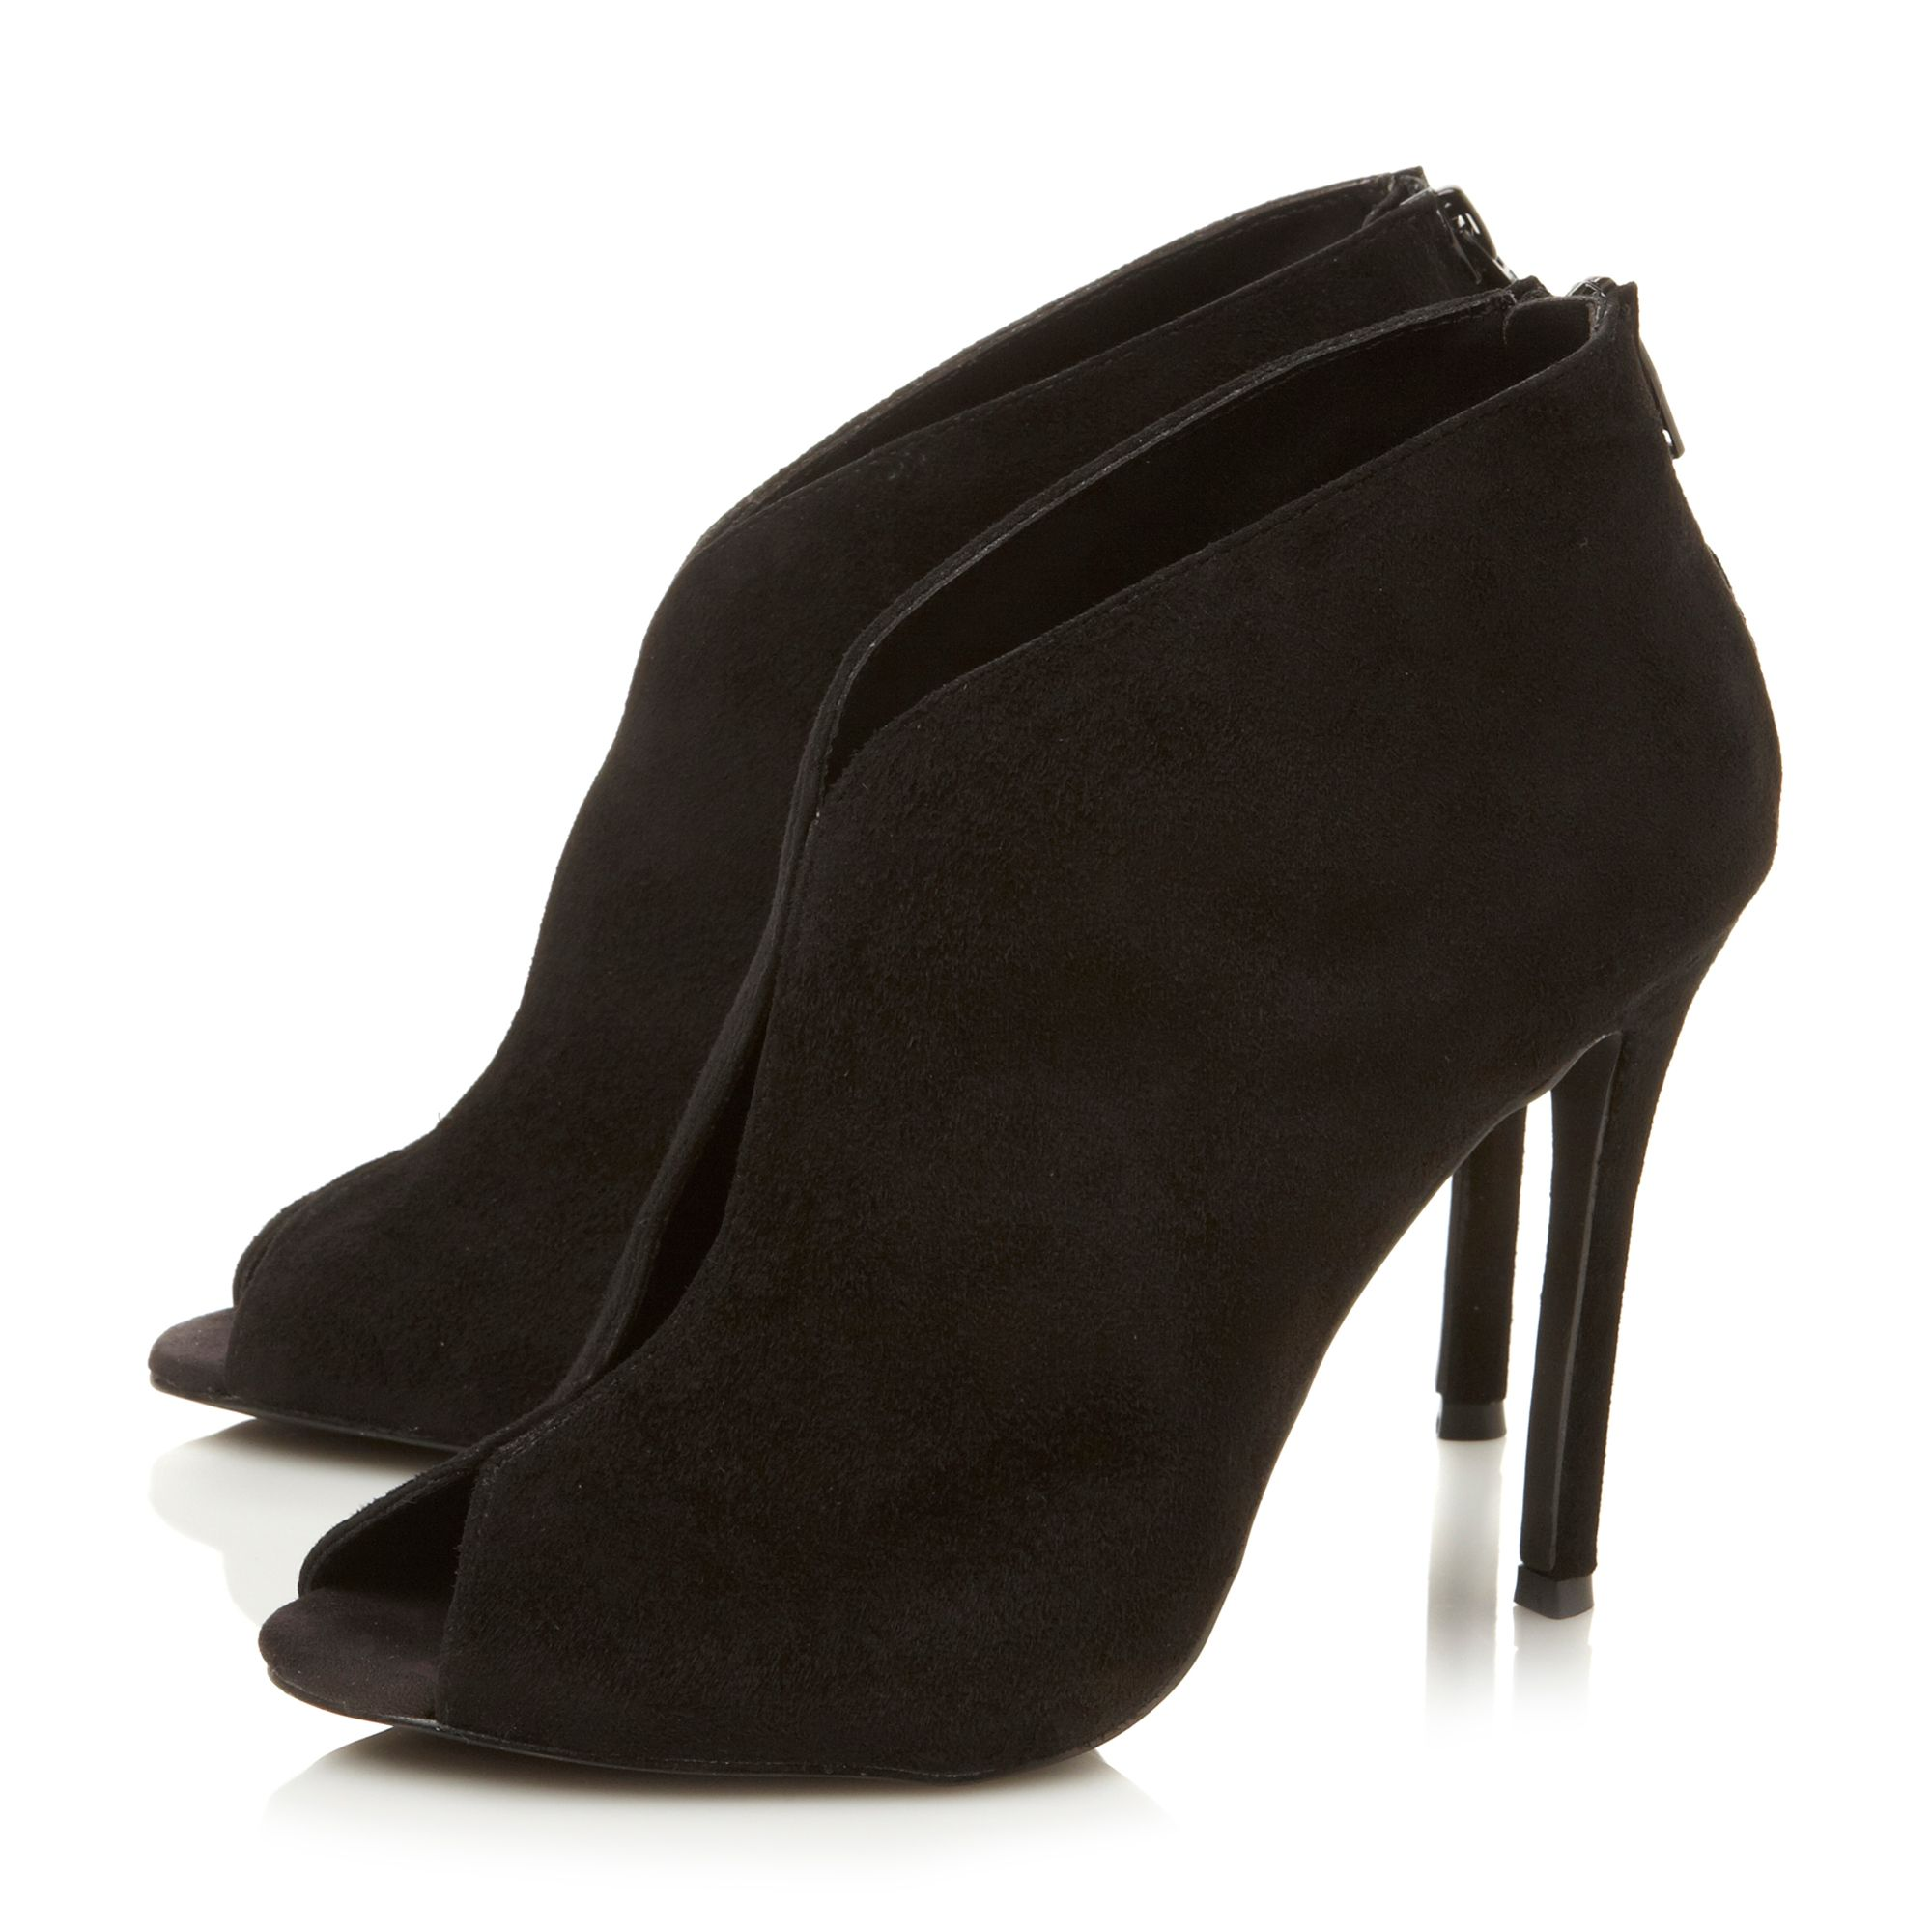 Imaginee suede peeptoe stiletto boots